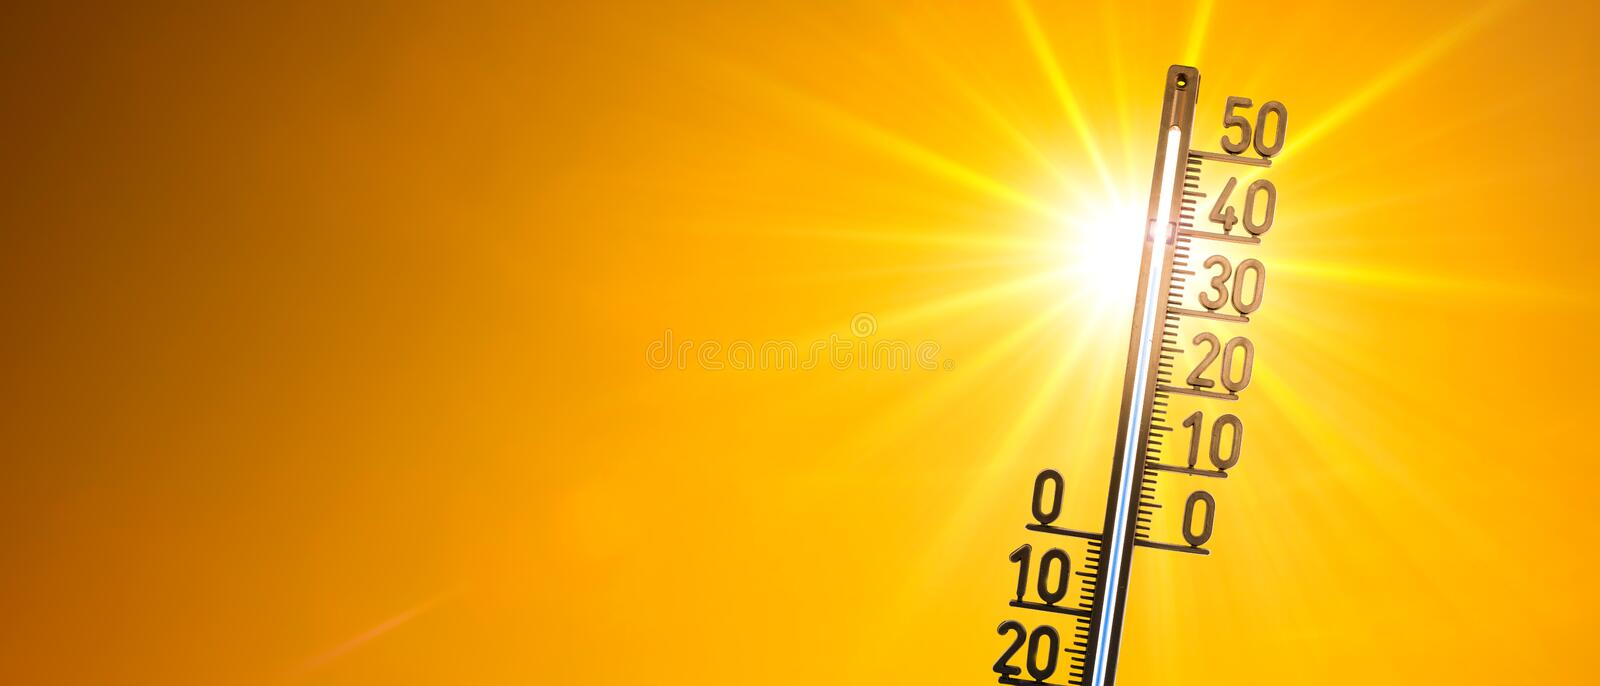 Heat wave royalty free stock photos